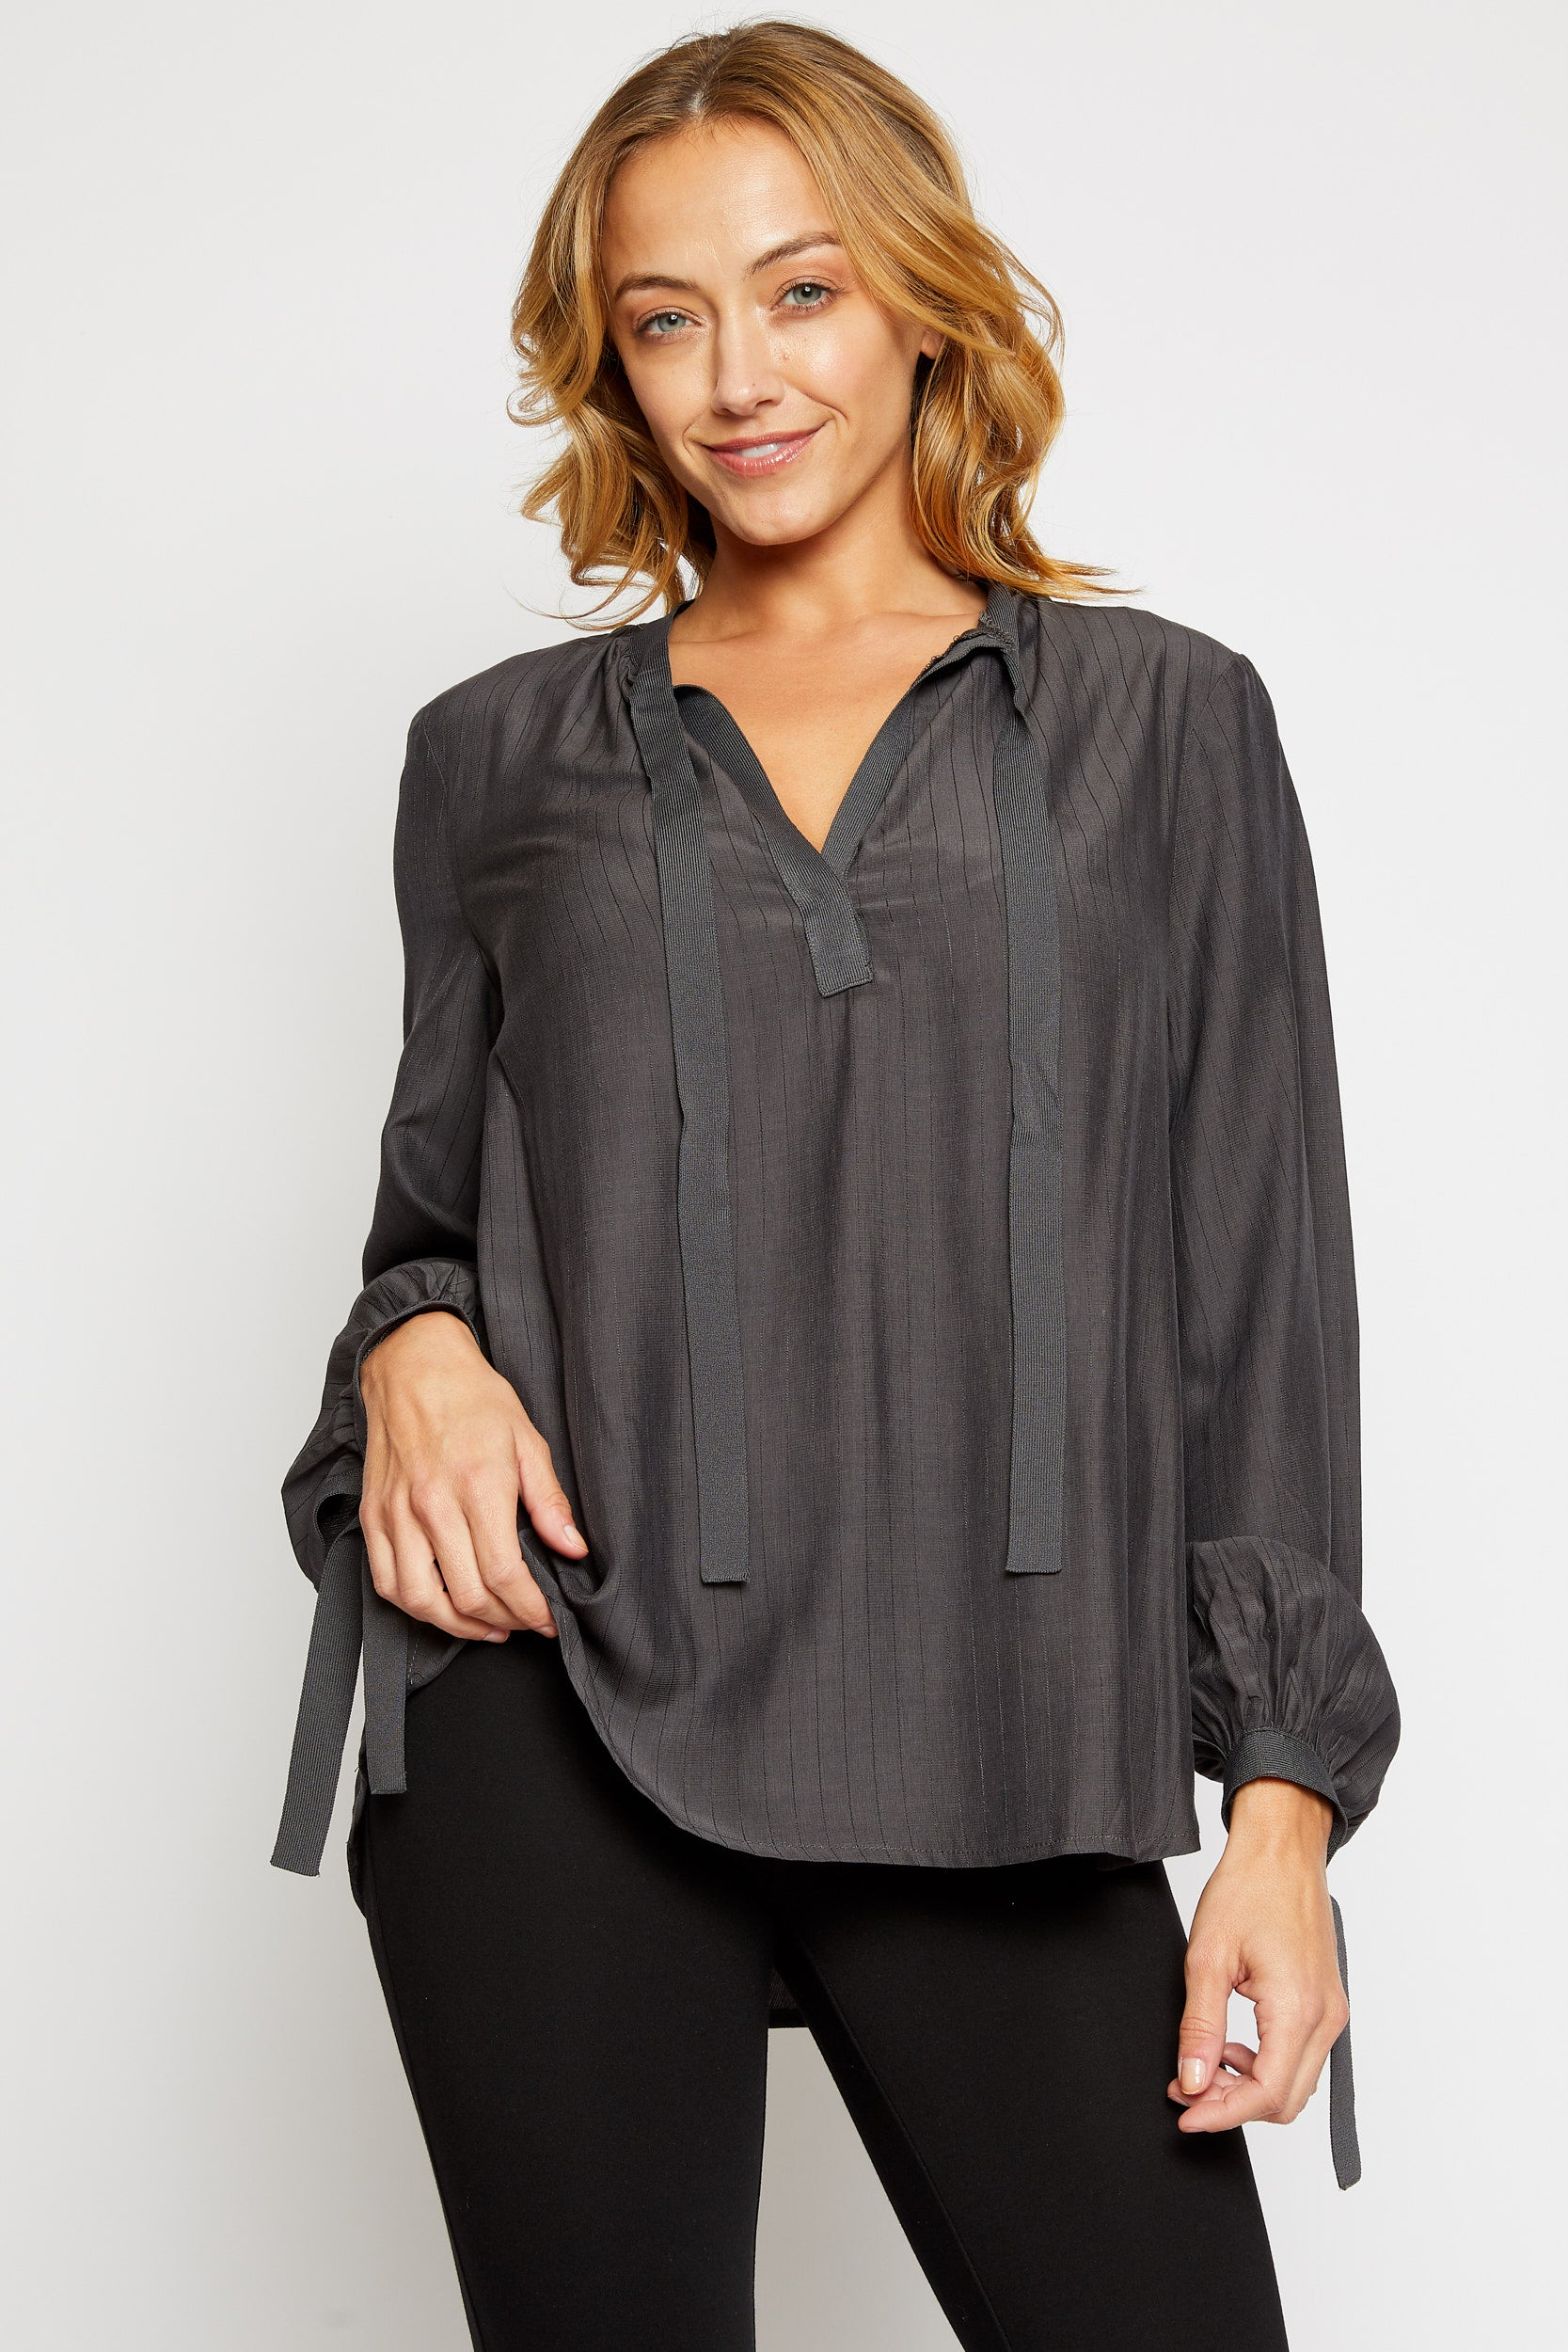 Rib Tie Long Sleeve Top - Jacqueline B Clothing